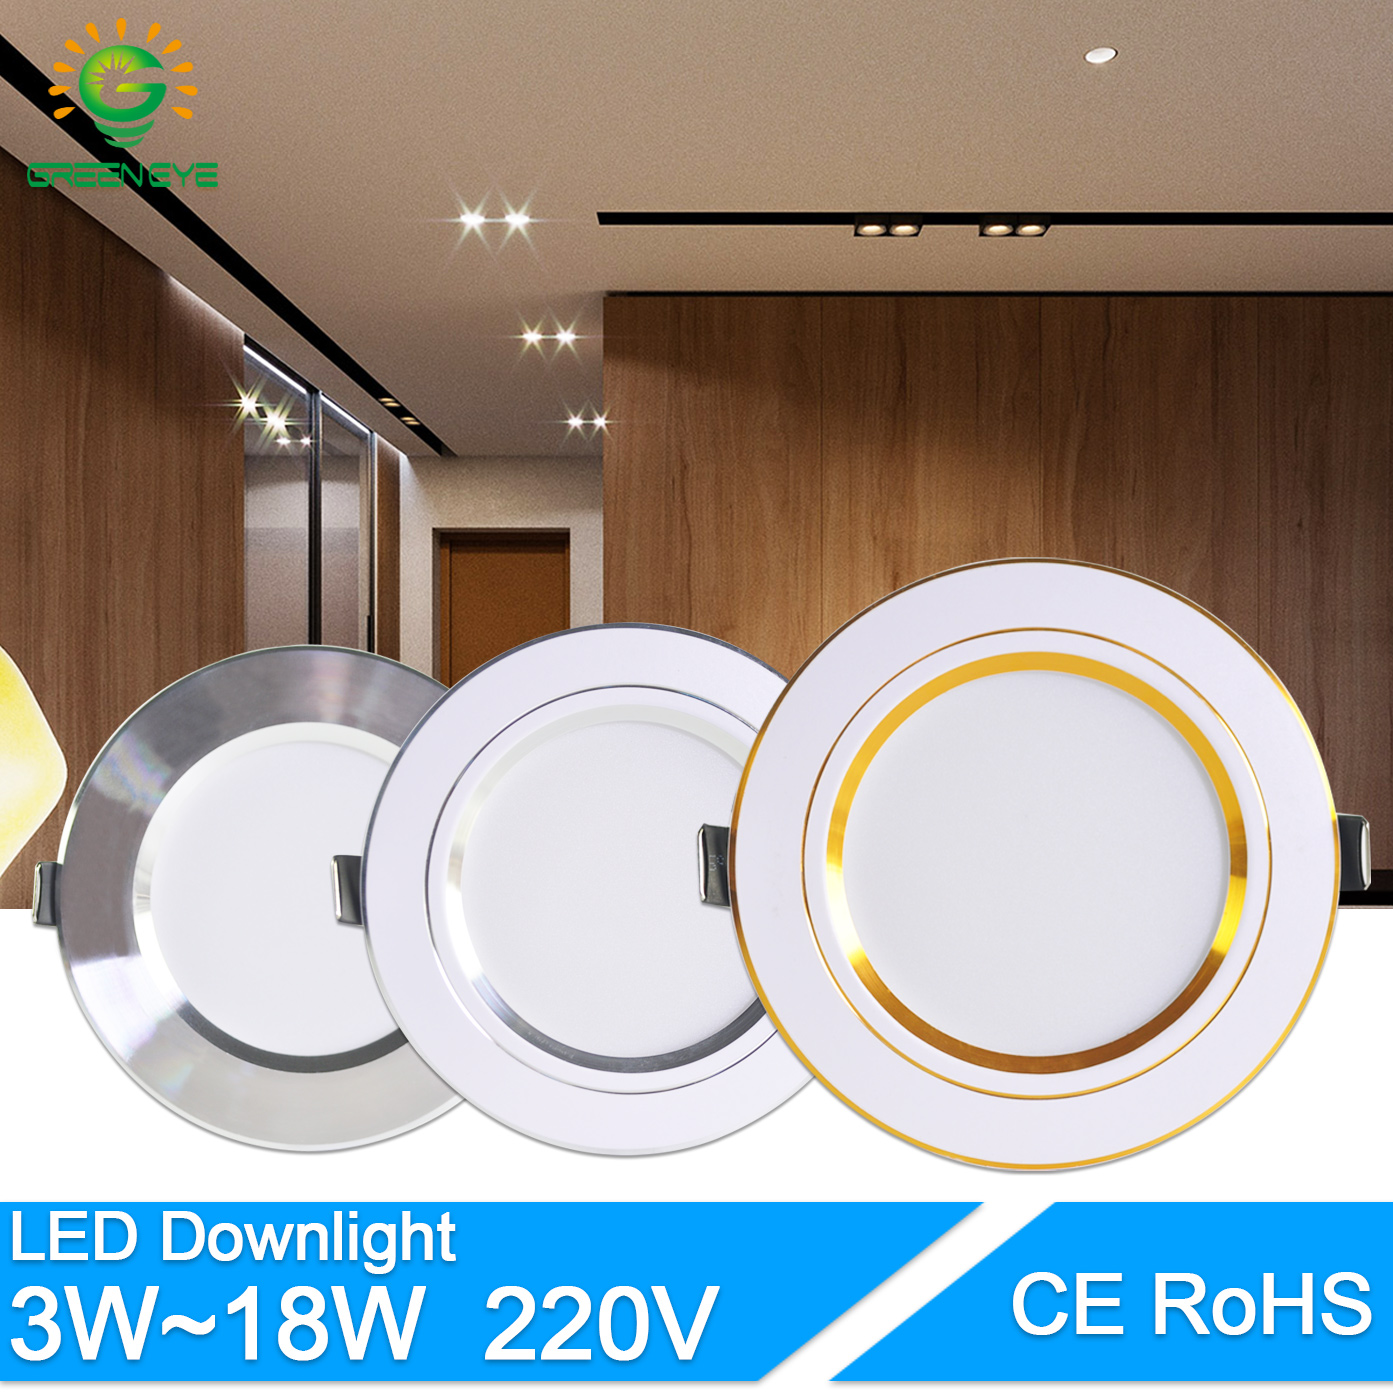 Downlight 3W 5W 9W 12W 15W 18W Spot led downlight AC 220V gold Silver White Ultra Thin Aluminum Round Recessed LED Spot Lighting